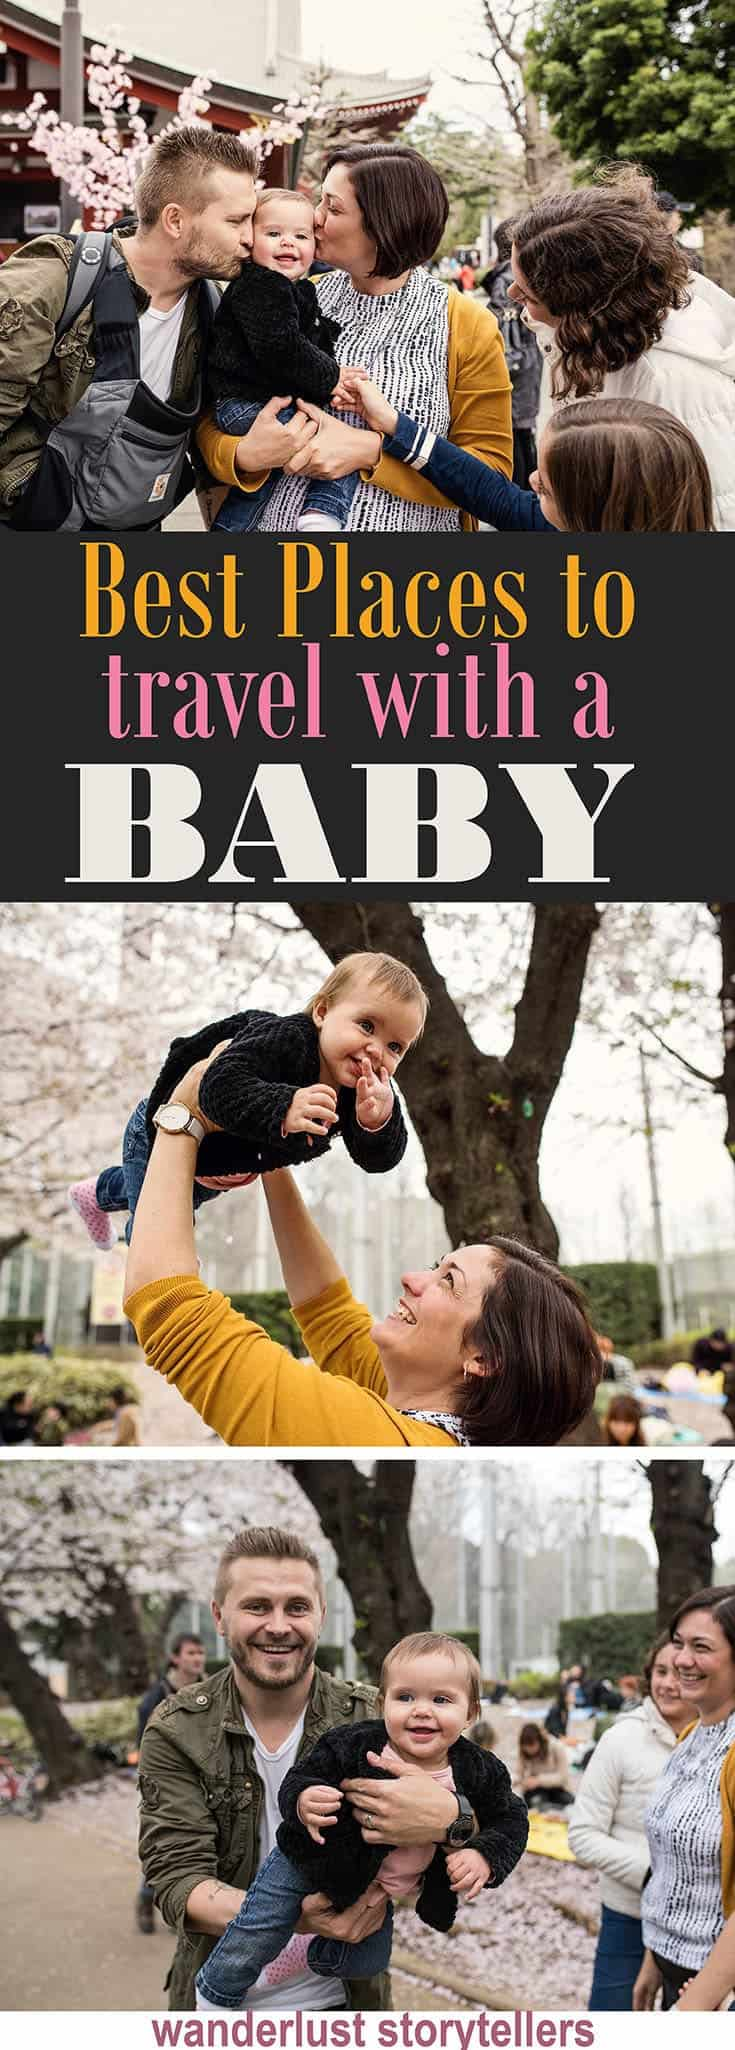 17 of the best places to travel with a baby on your family vacation! //////////////////////////////////////// Where to Travel with a Baby | Baby Travel Destinations | Holiday with Baby Ideas | Family Vacation Destinations